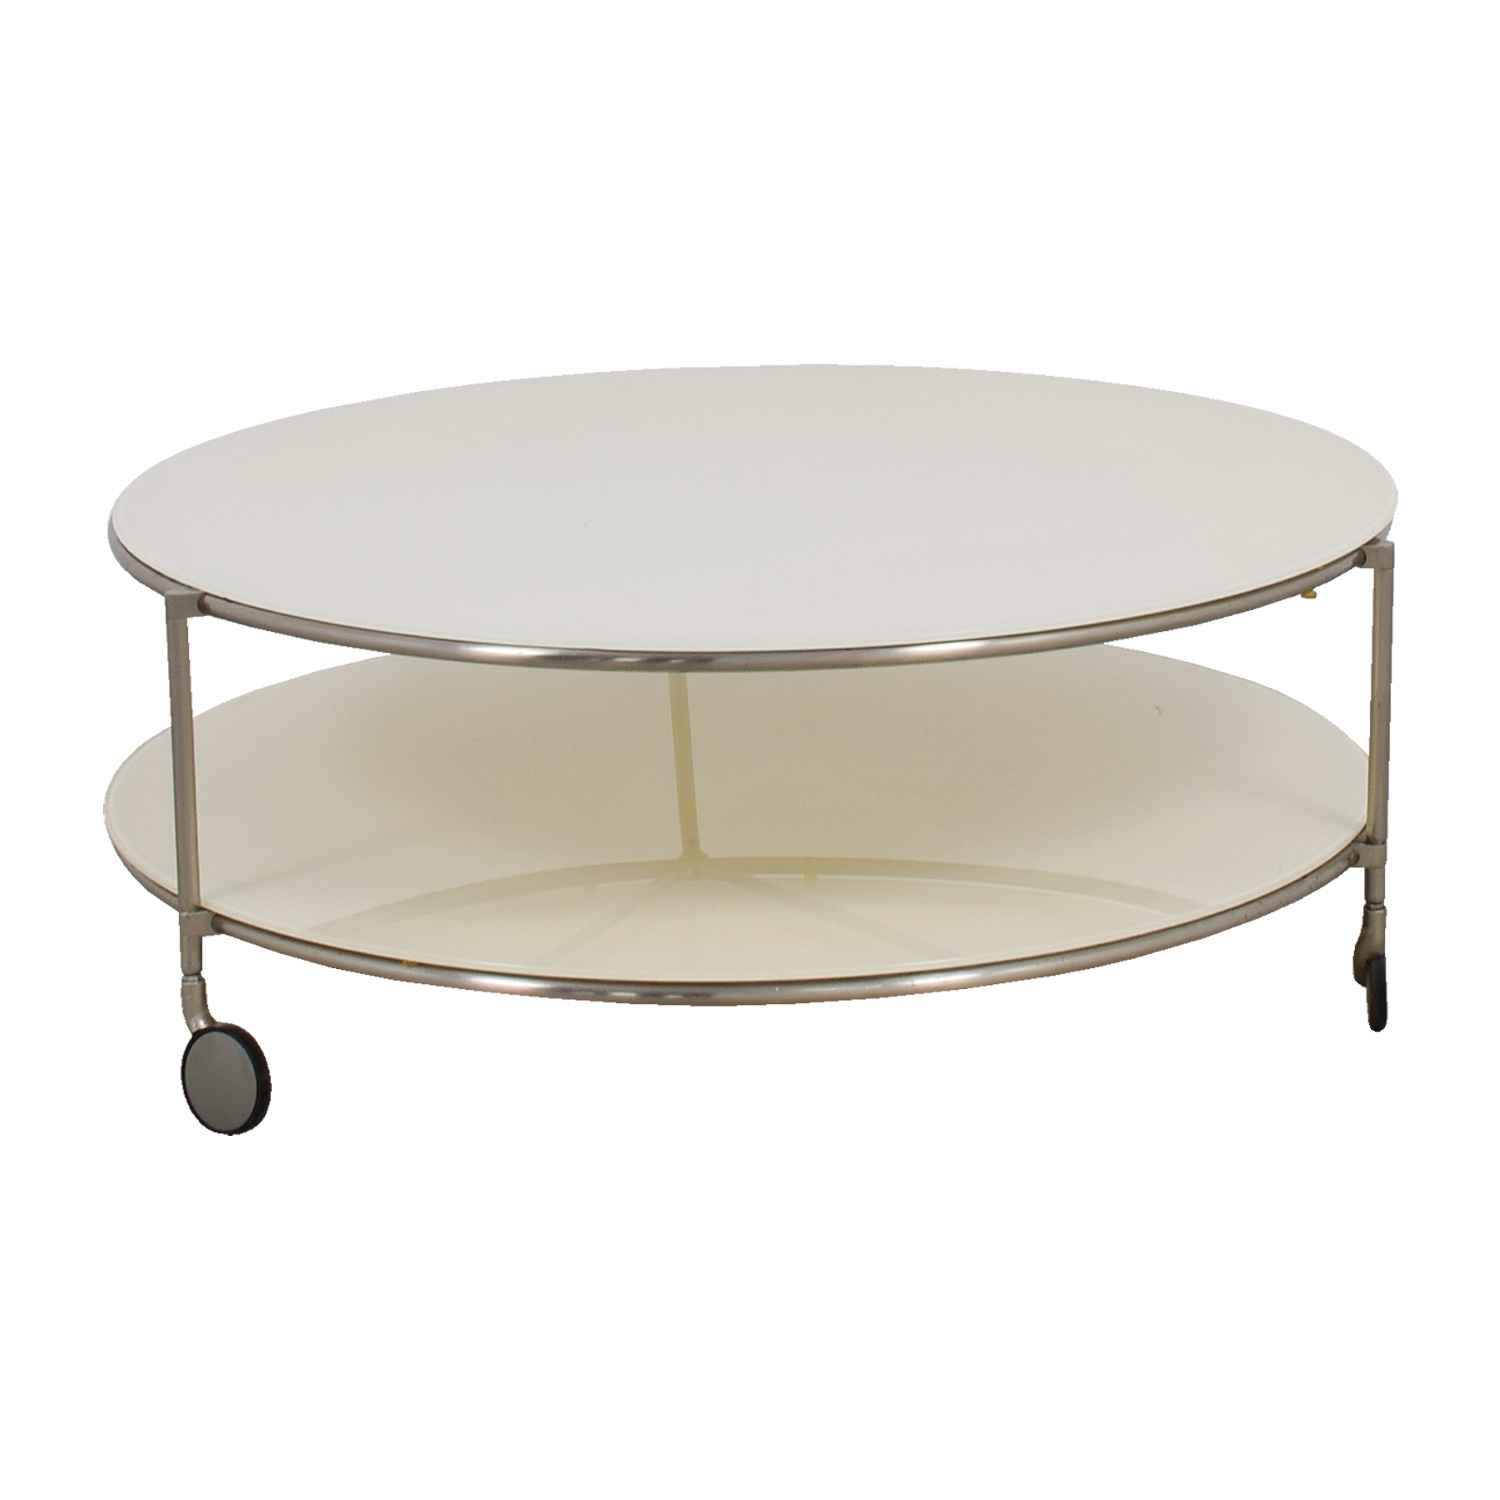 Crate & Barrel White Double Glass Cocktail Table on Castors / Coffee Tables